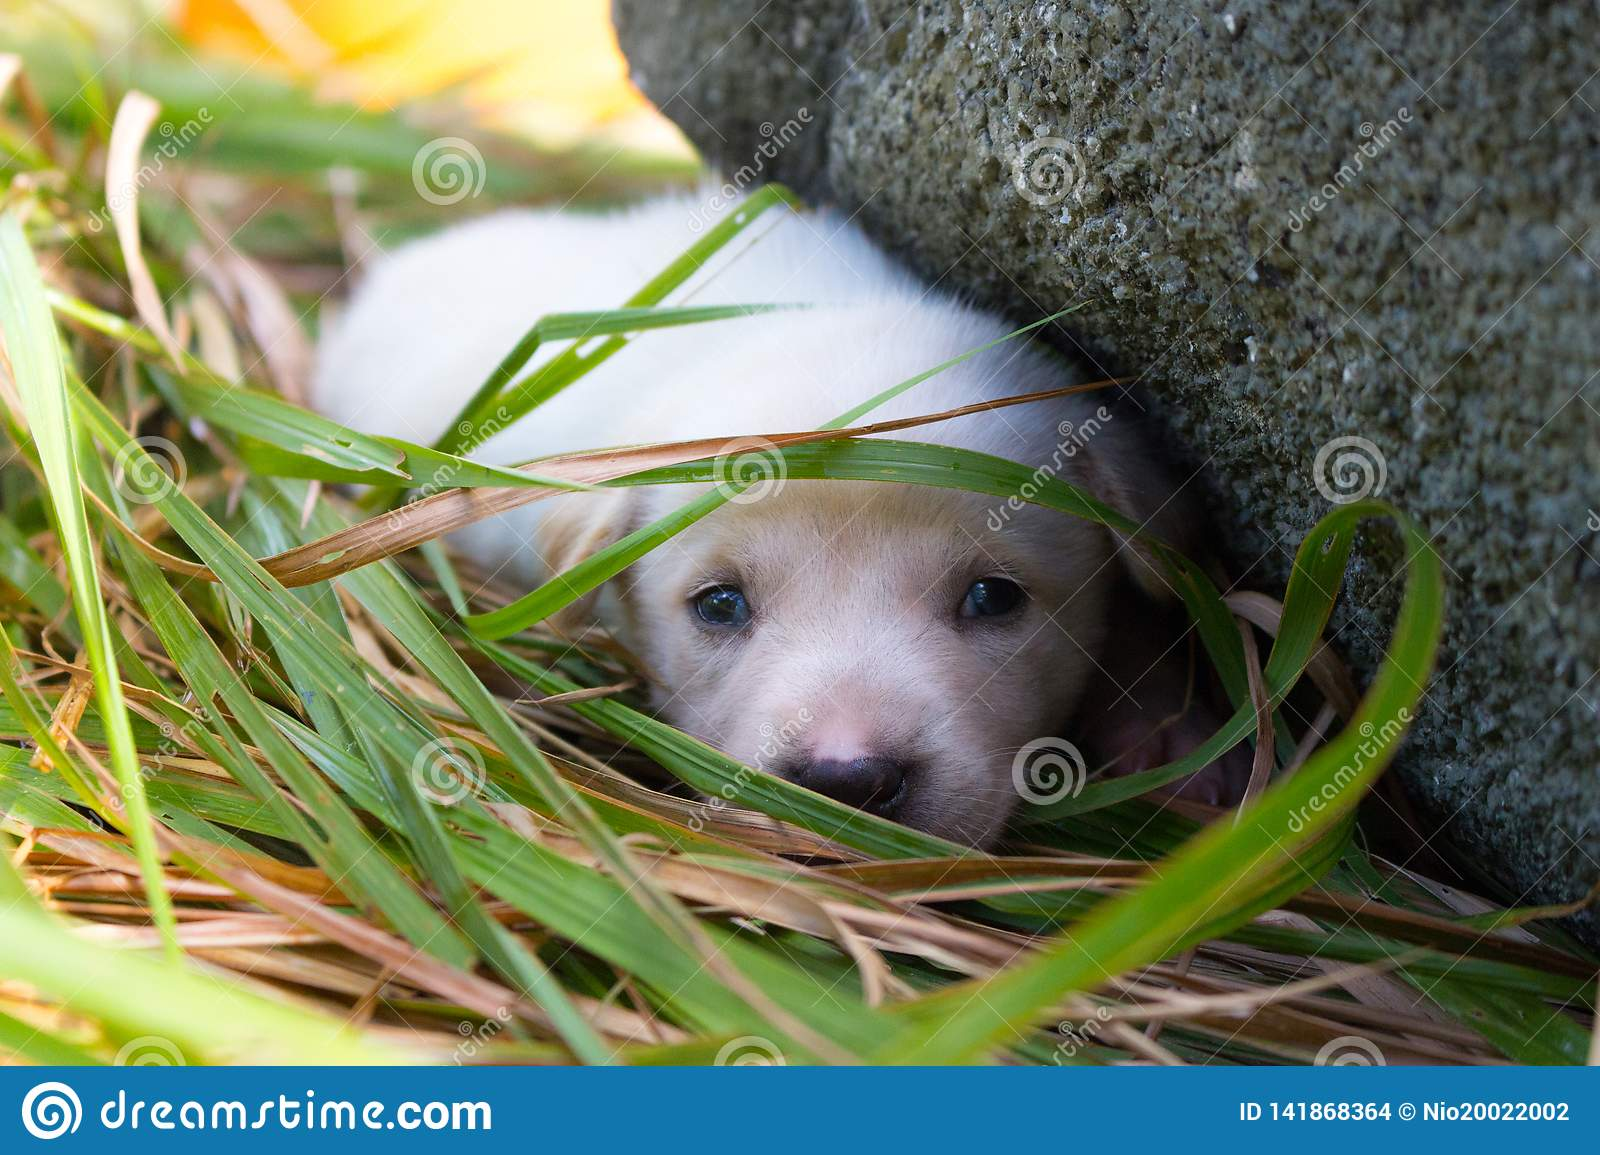 Sad White Puppy Lying In Grass Near Stone Cute Small Dog Looking At Camera Lovely Baby Dog Close Up Animal Care And Love Concep Stock Photo Image Of Concep Baby 141868364